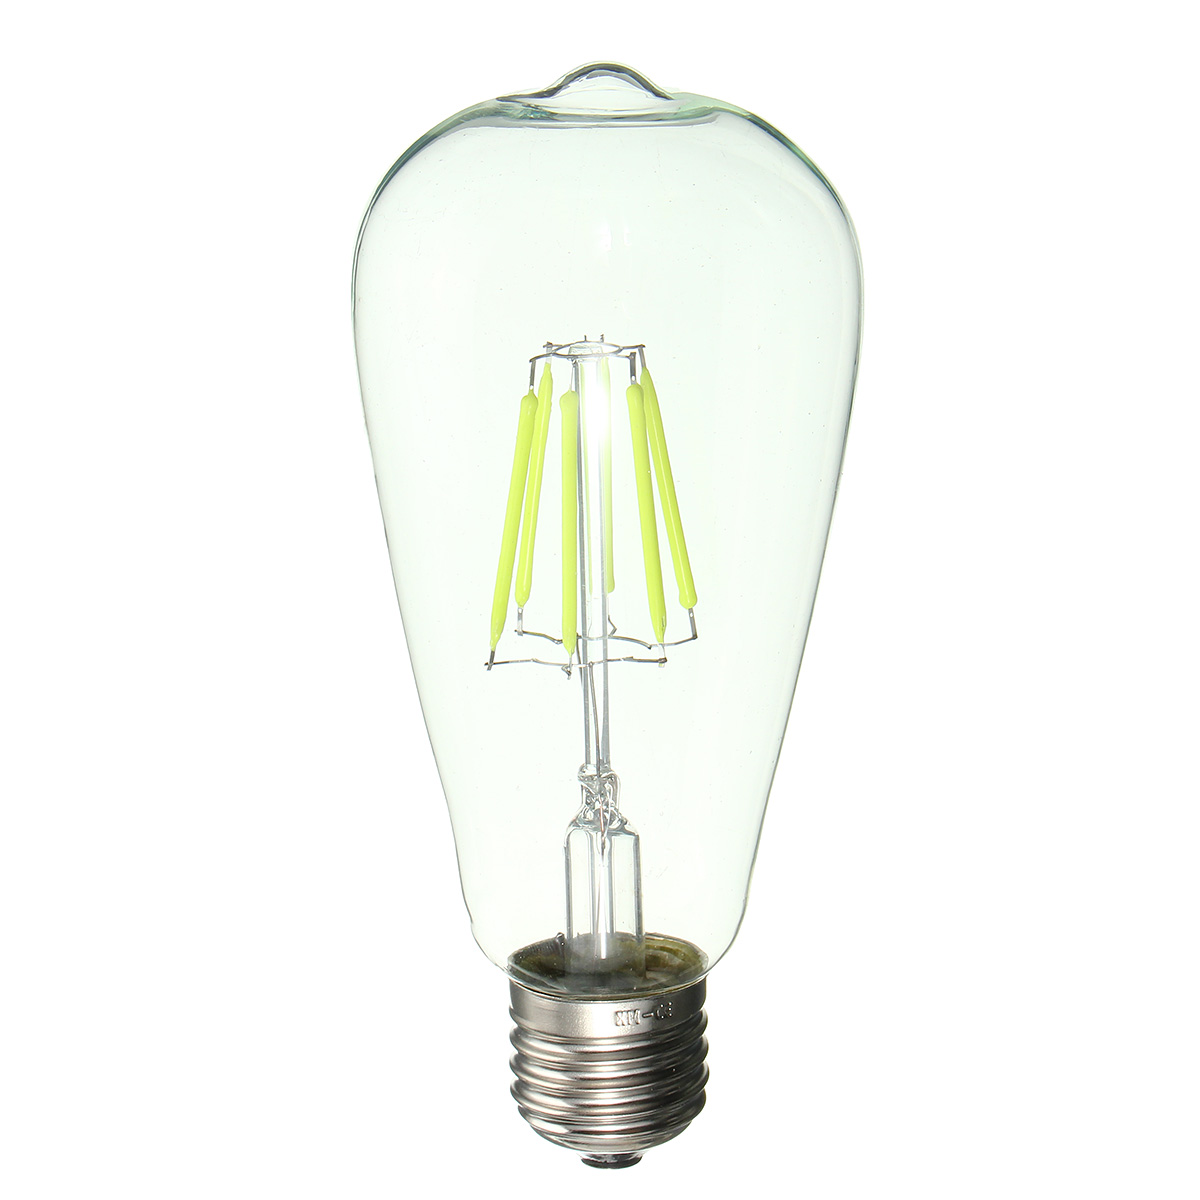 E27 retro edison globe bulbs 6w screw led cob bulbs rgb colorful light lamp energy efficient Efficient light bulbs